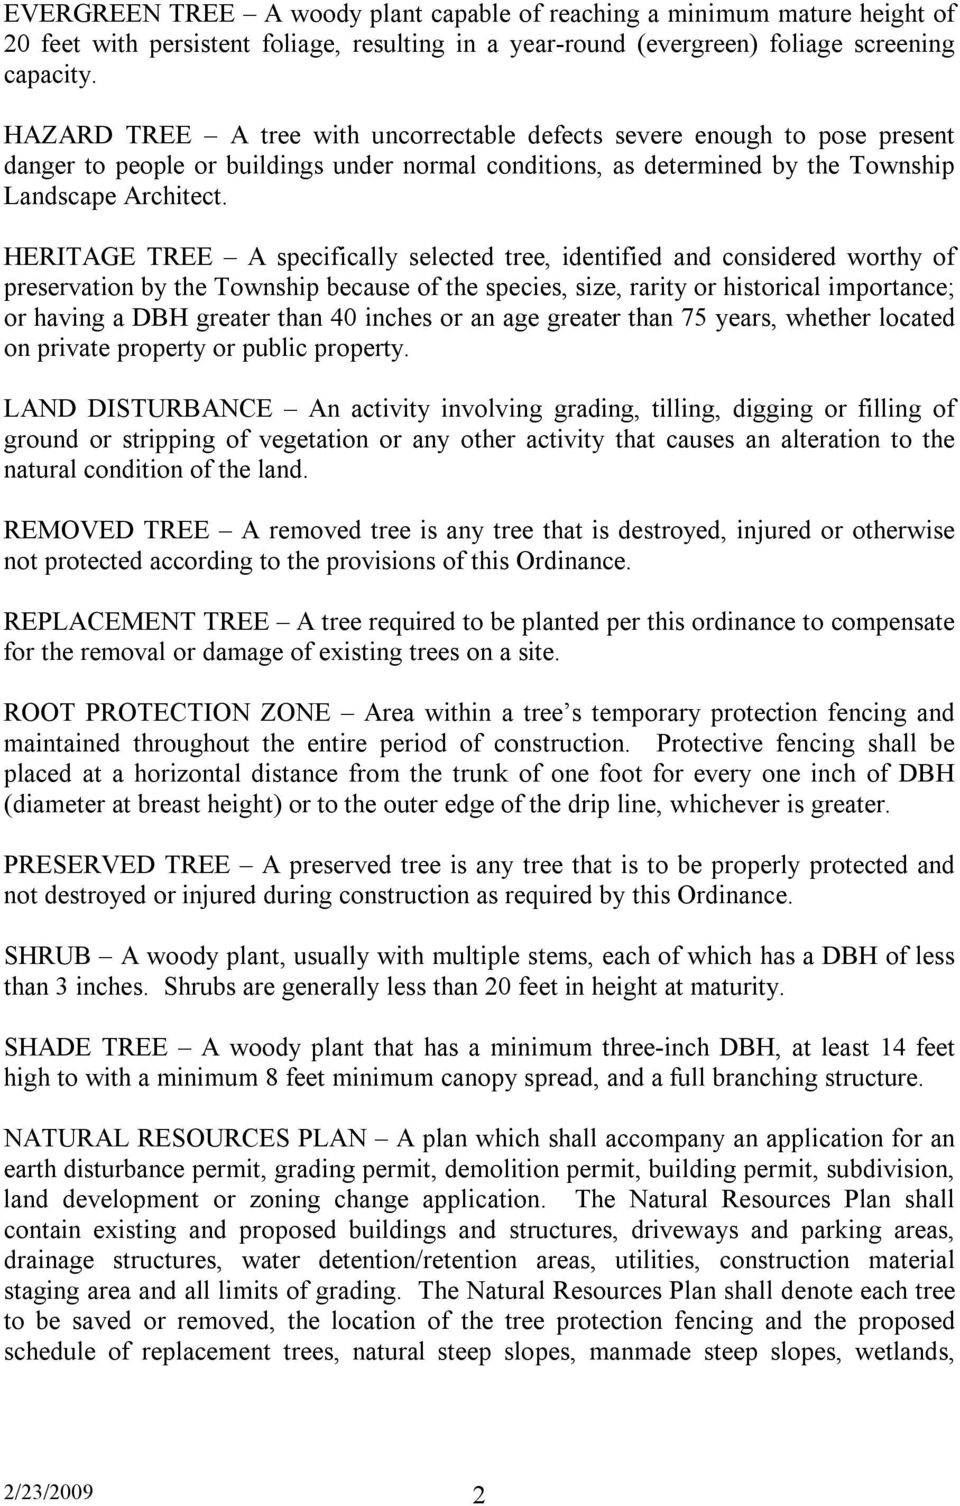 HERITAGE TREE A specifically selected tree, identified and considered worthy of preservation by the Township because of the species, size, rarity or historical importance; or having a DBH greater